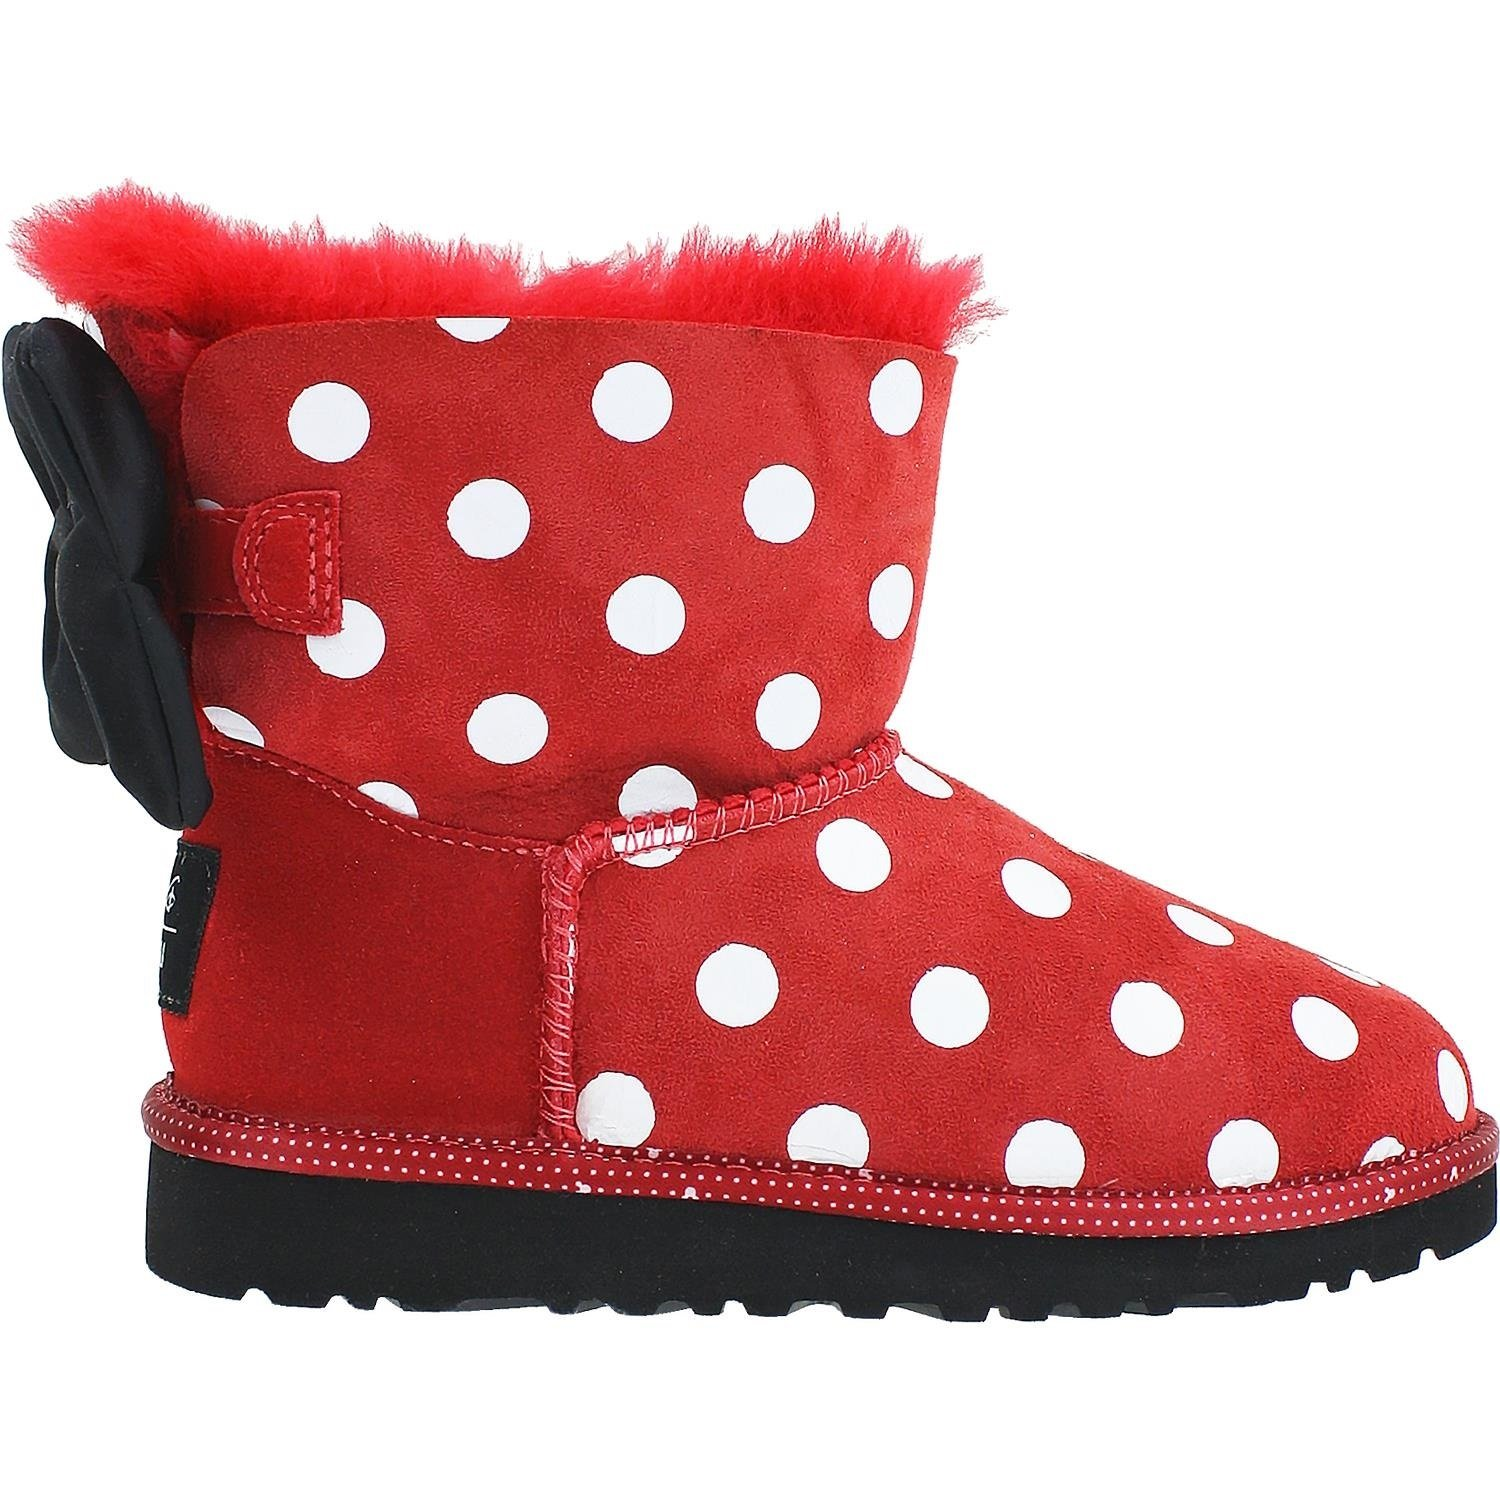 UGG Big Kids Sweetie Bow Boot Red Size 2 M US Little Kid